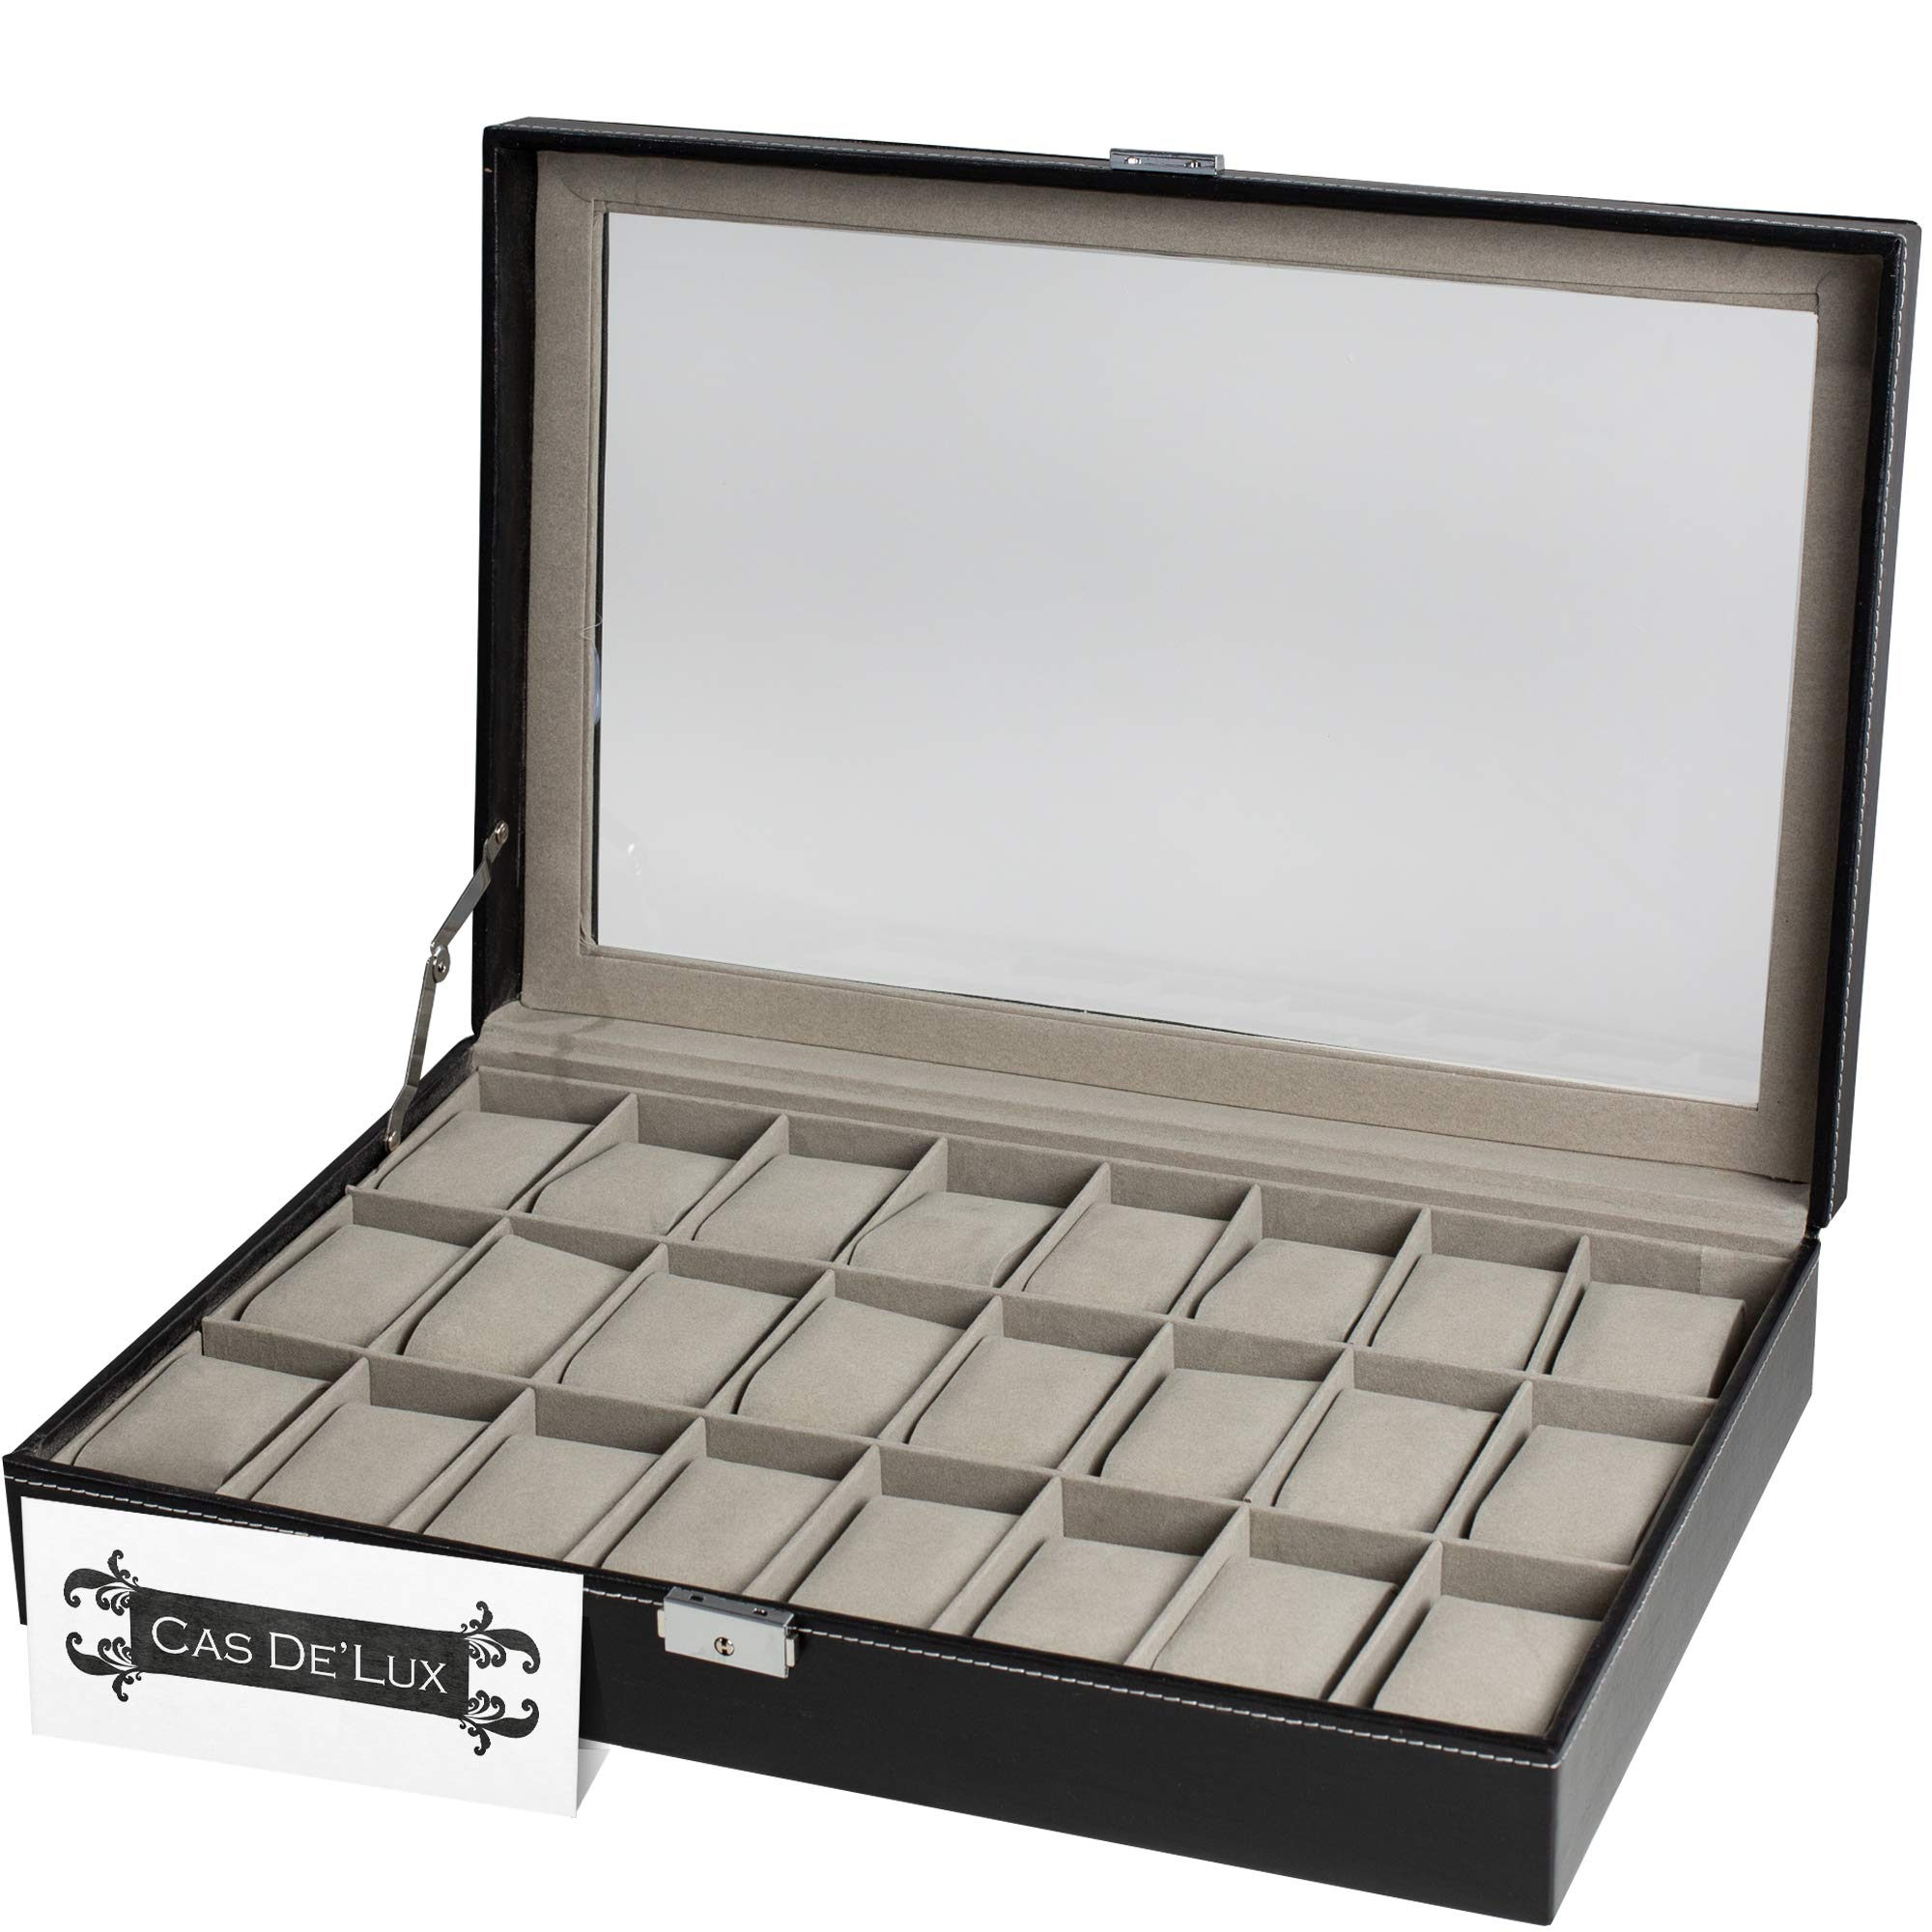 Watch Box Organizer Pillow Case 24 Slot Display Cases With Framed Glass Lid Elegant Contrast Stitching Sturdy and Secure Lock for Men Women Watch and Jewelry Large Holder Boxes